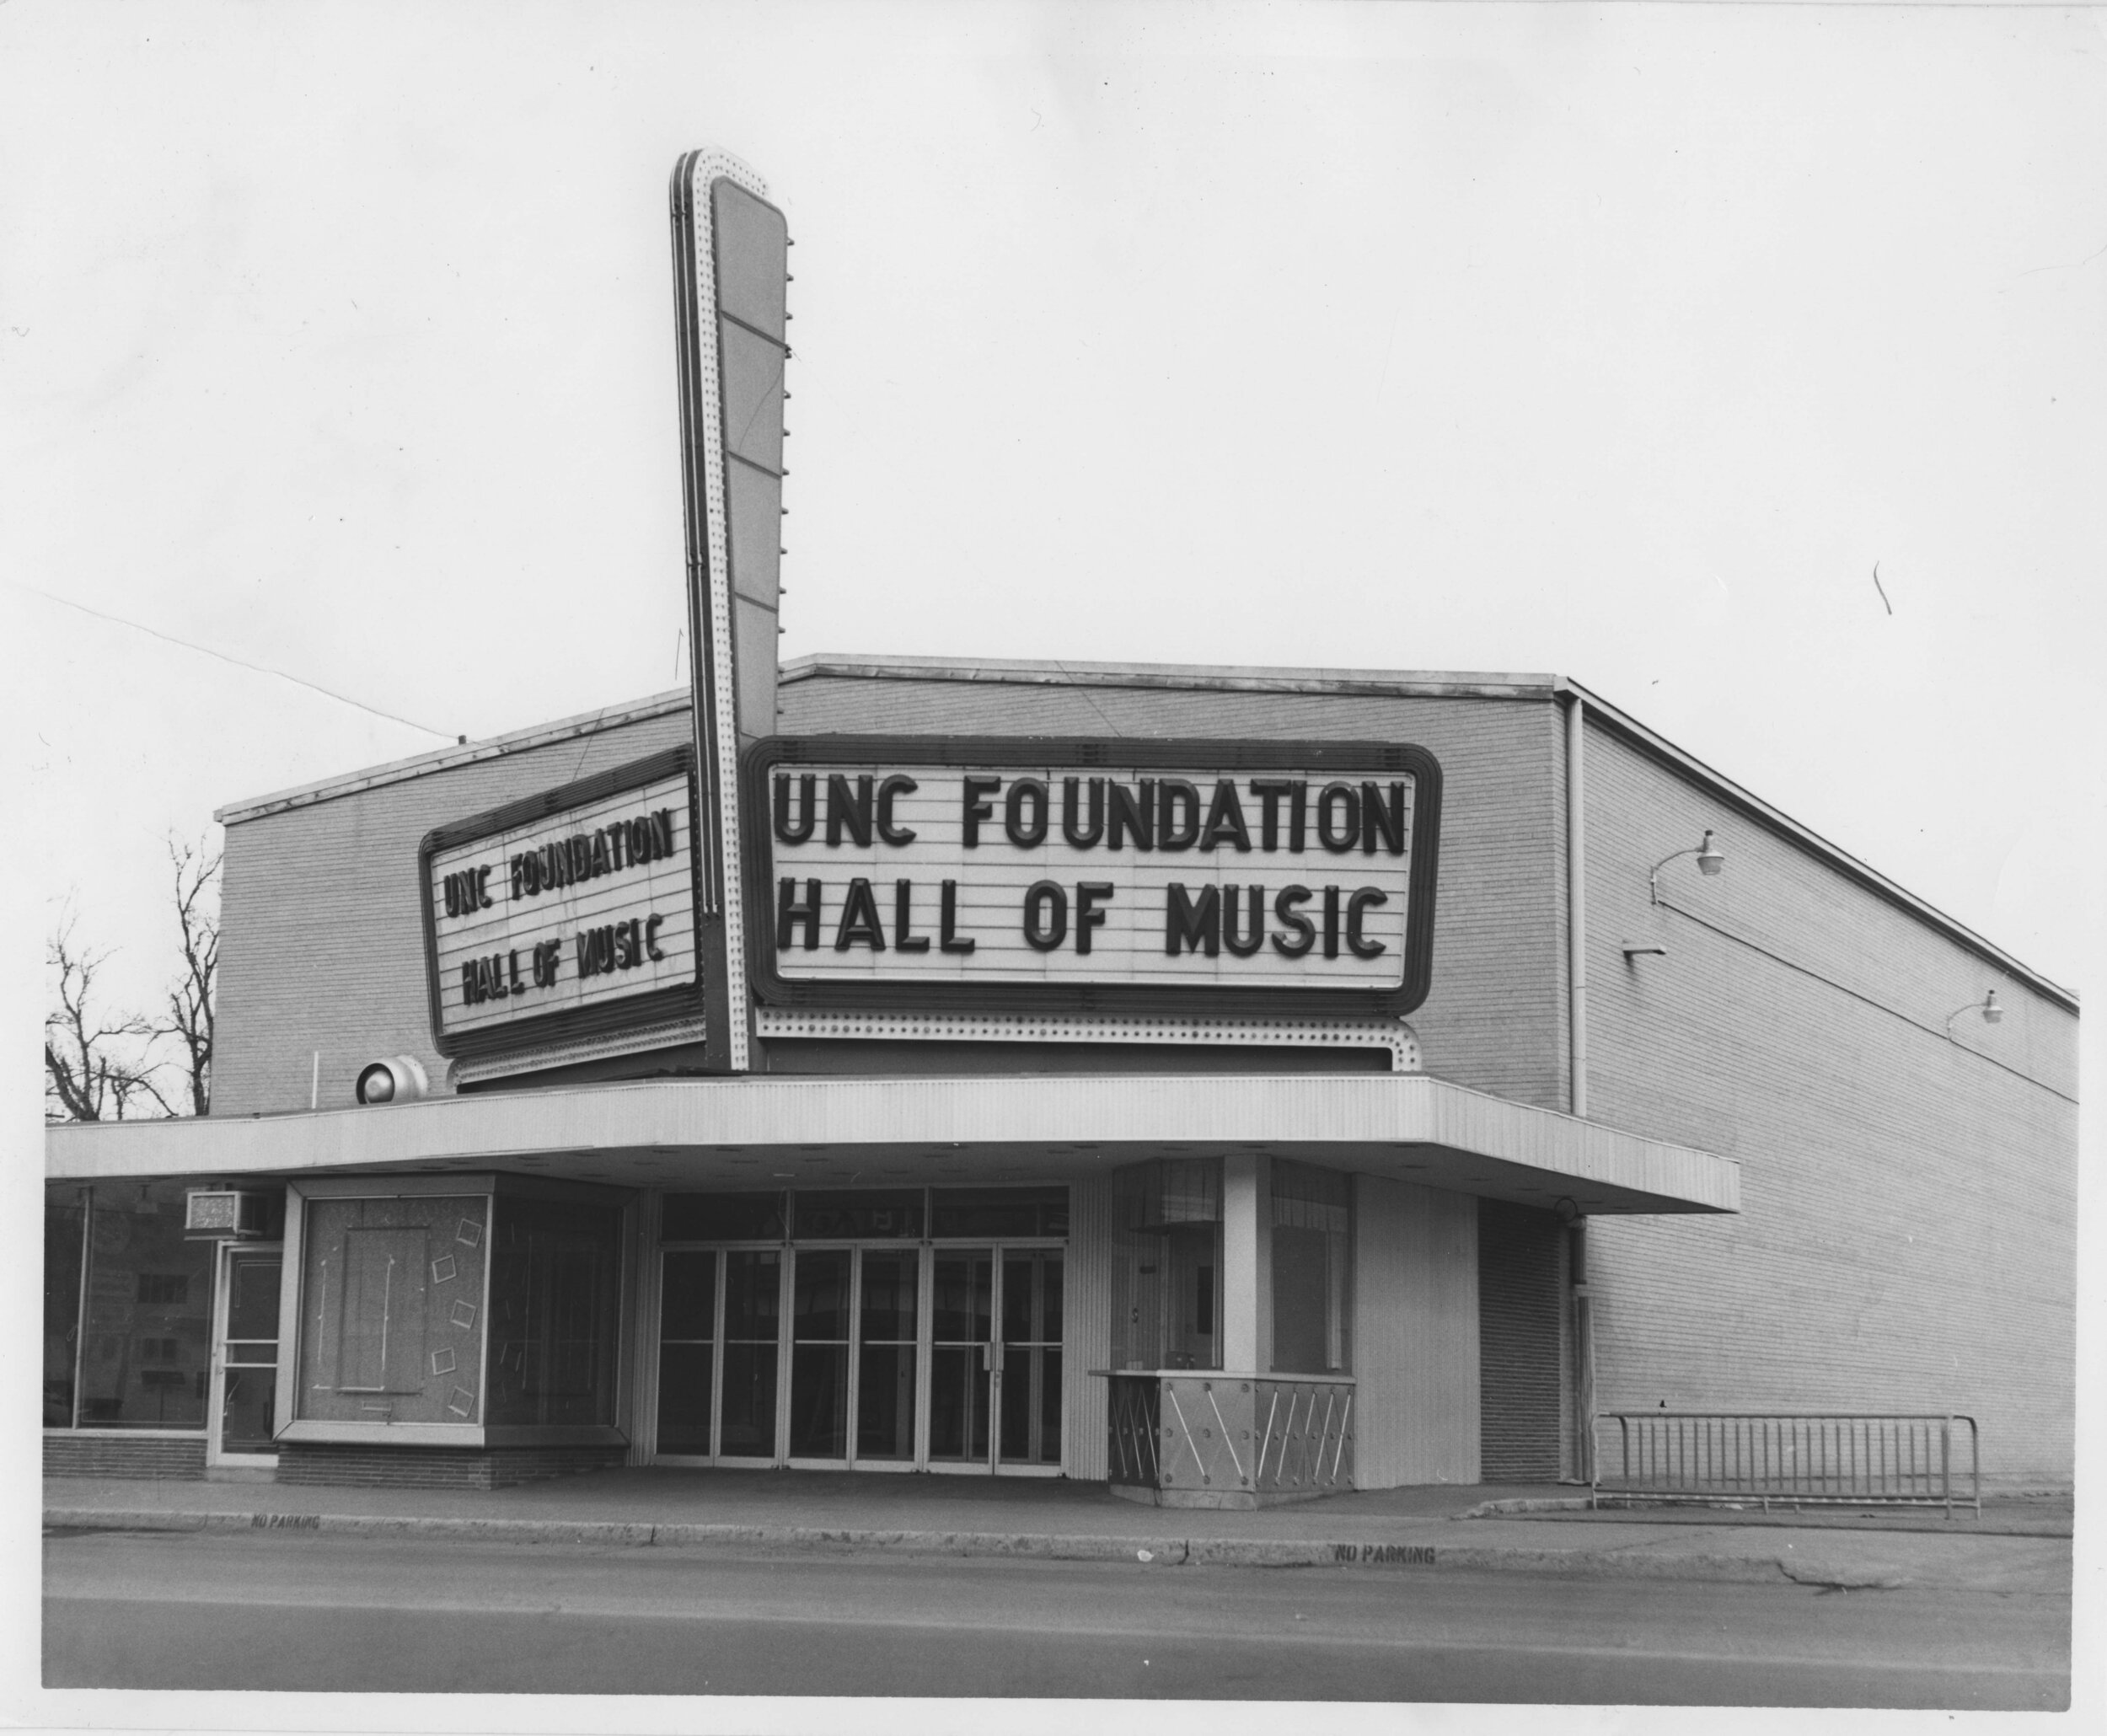 Foundation Hall, UNC - Original operated as the Colorado movie theater from 1957 until the mid-1970s, UNC re-dedicated the building as Foundation Hall in 1976. Since that time, university's music and opera programs have used the venue extensively. Also, from 1976 until 1988, Foundation Hall served as the primary home of the Greeley Philharmonic Orchestra. The opening of the Campus Commons in 2019 provided a new performance space for UNC's musicians and singers, bringing to an end the use of Foundation Hall. (Image use courtesy of Special Collections, Michener Library, University of Northern Colorado.)